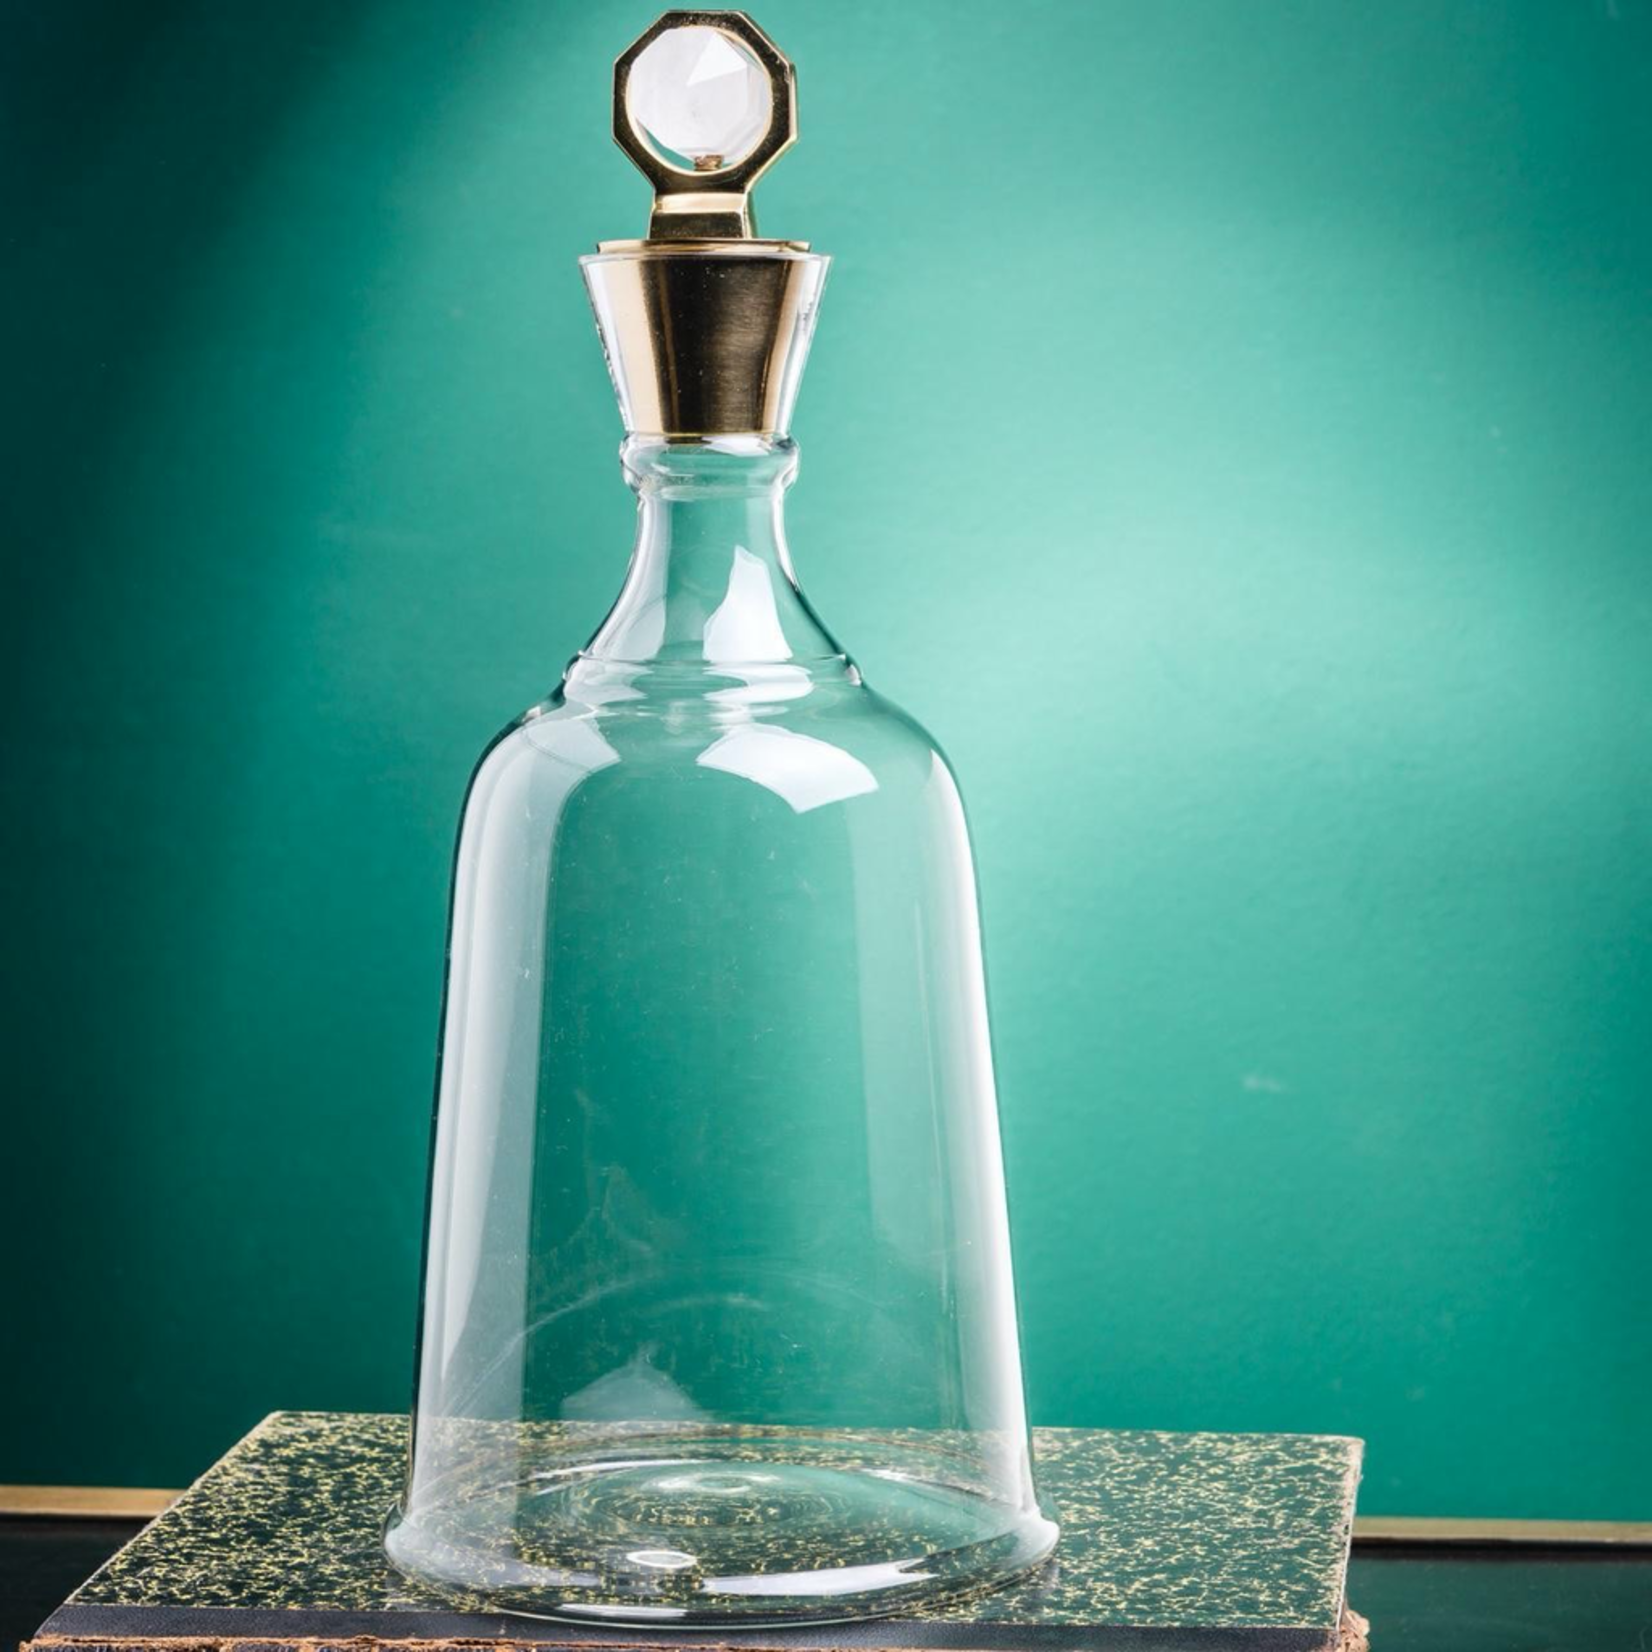 OBJET DE CURIOSITE HIGH GLASS DECANTER, BI-TERMINATED CRYSTAL LID